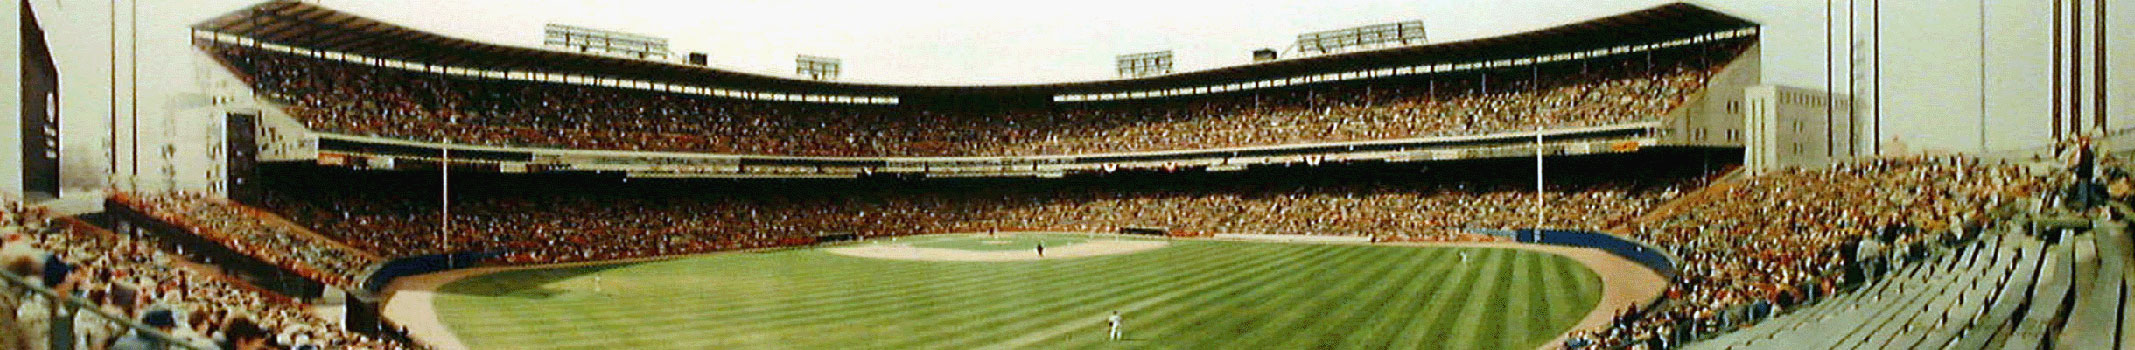 Milwaukee County Stadium Panorama